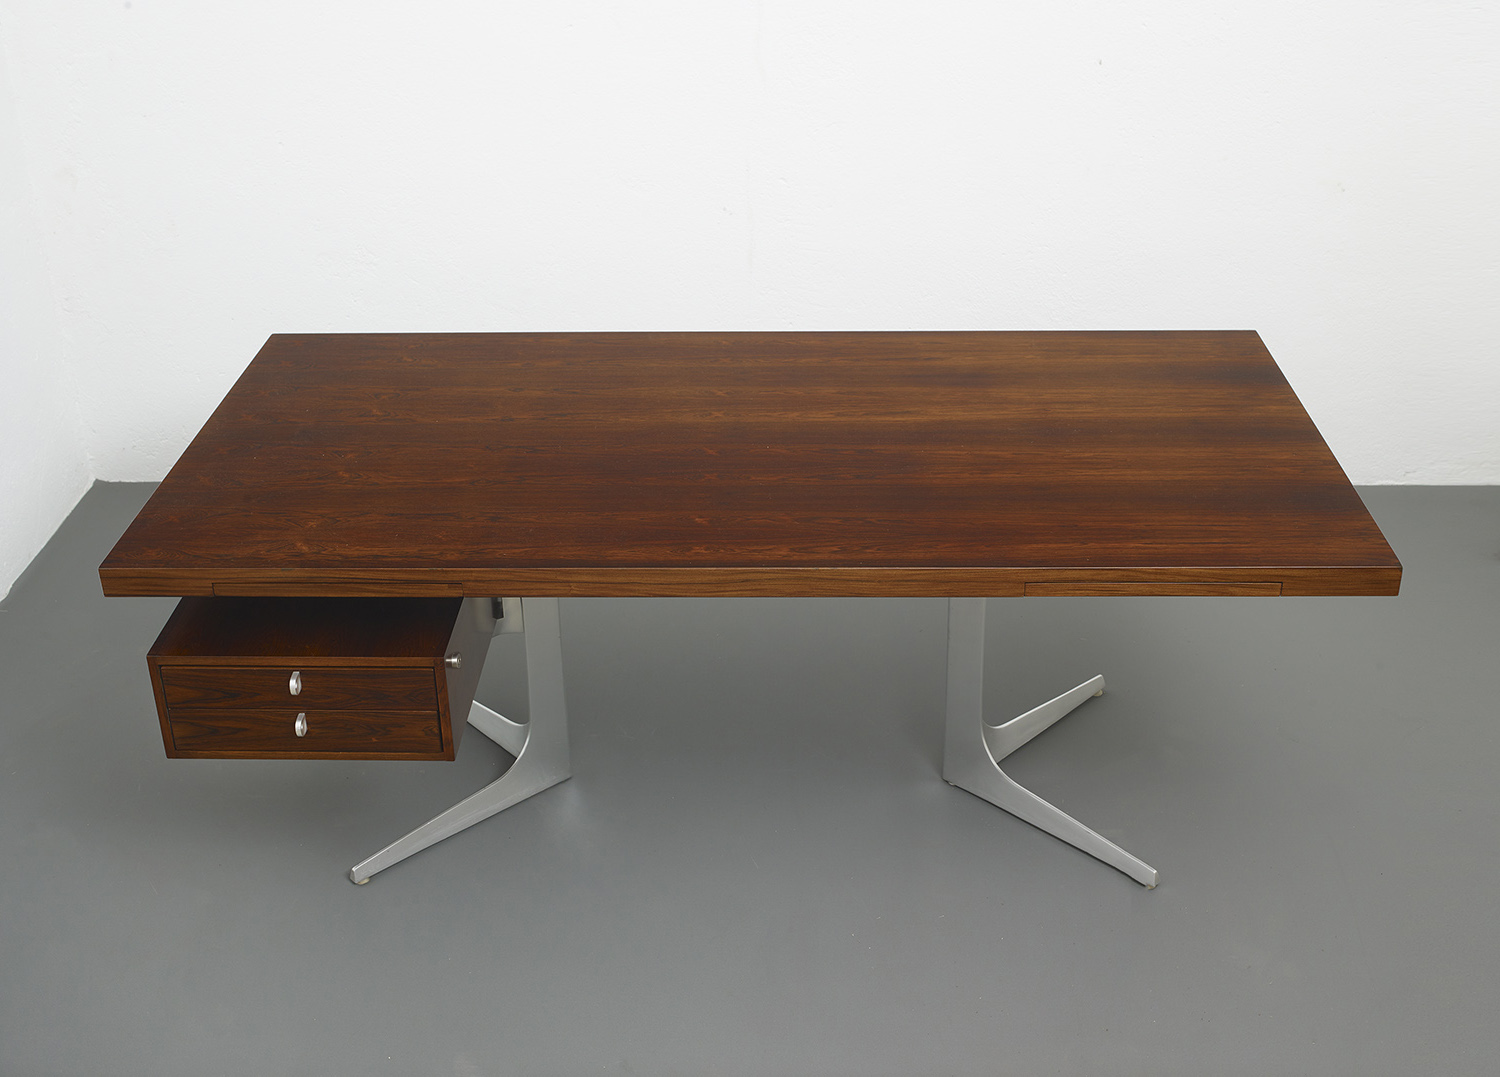 herbert-hirche-executive-rosewood-desk-image-01